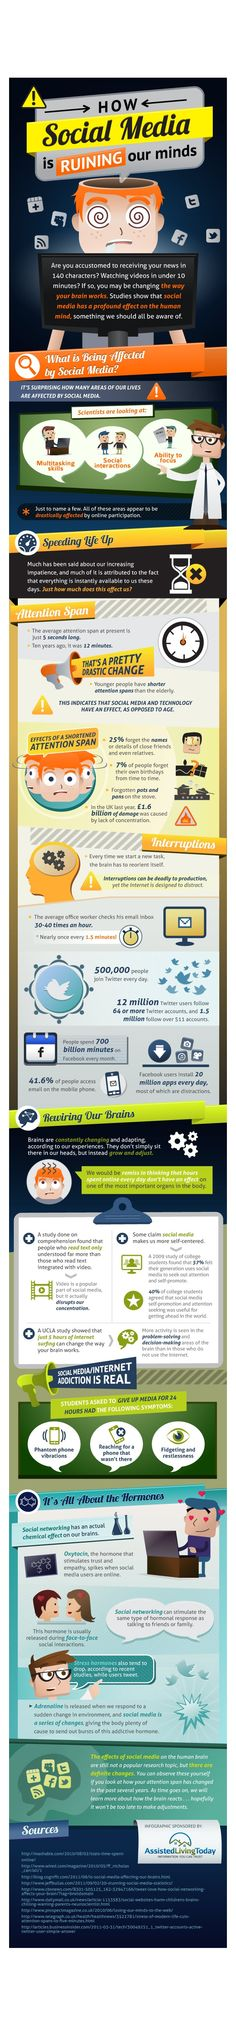 Hmmm..Social Media rots the brain? Opinions..